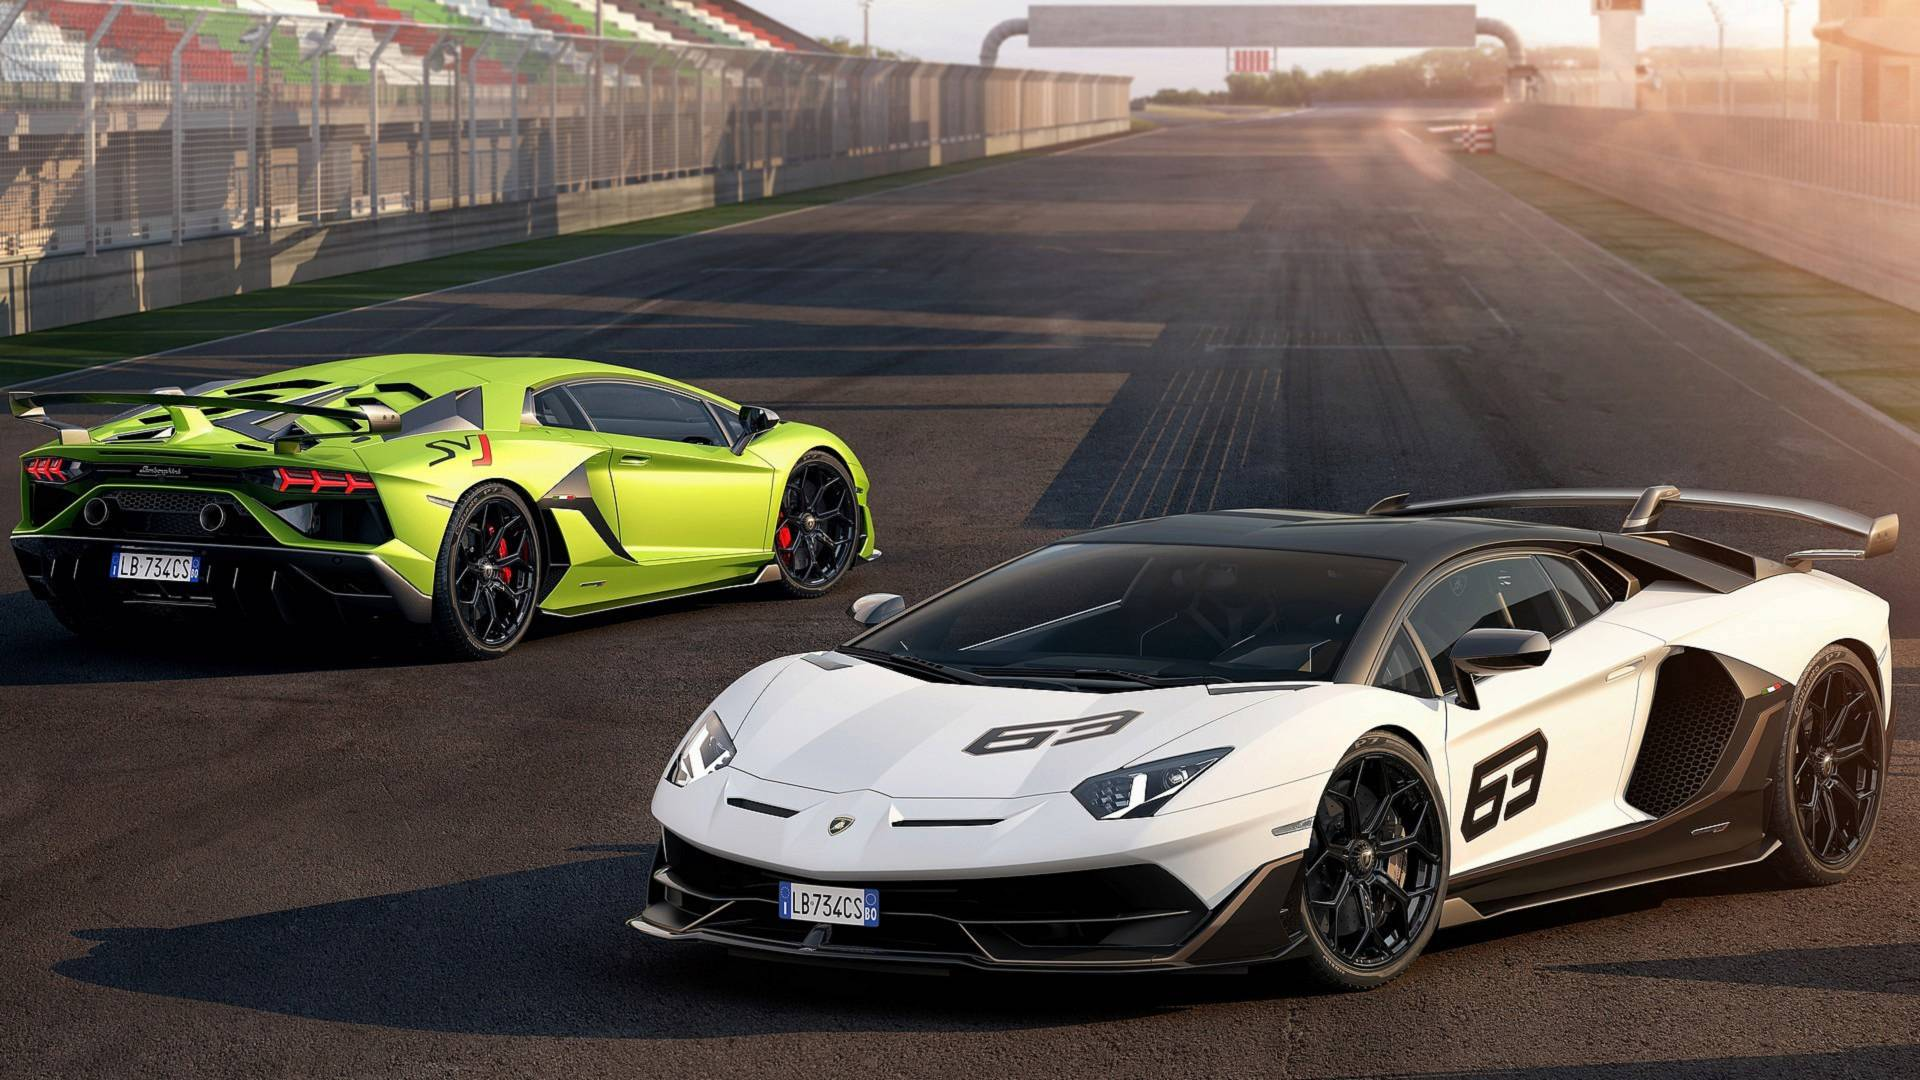 Lamborghini Aventador Svj Looks Complicated In Live